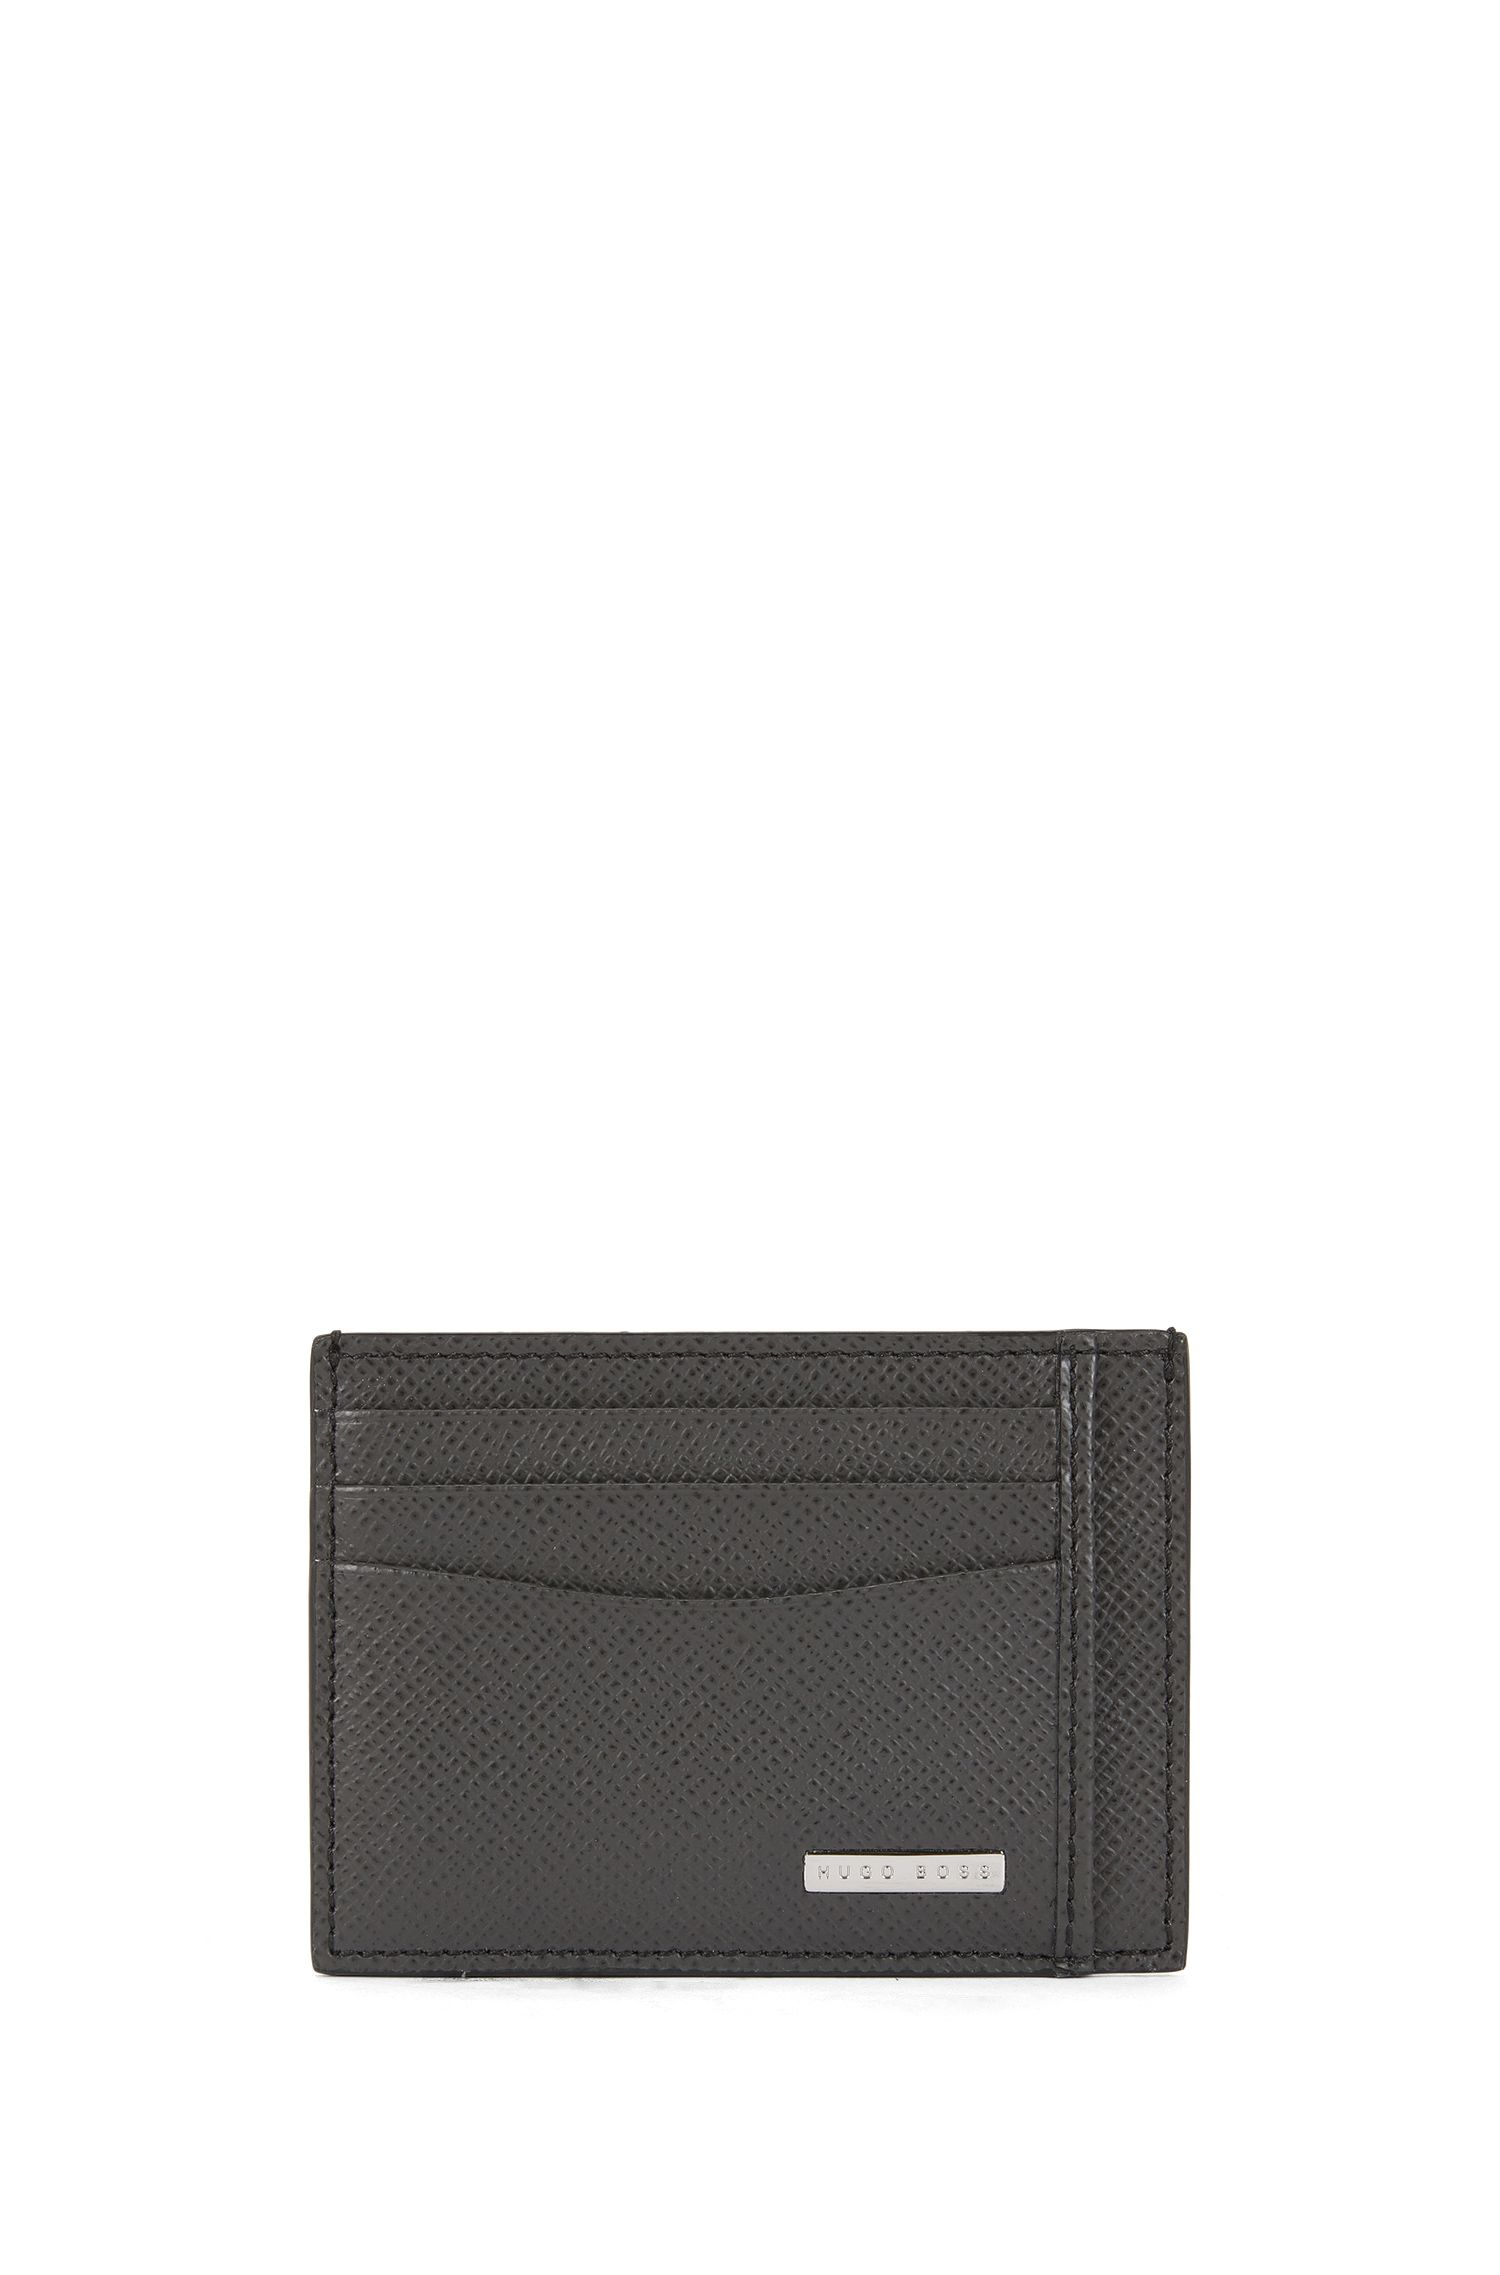 Porte-cartes Signature Collection, en cuir palmellato